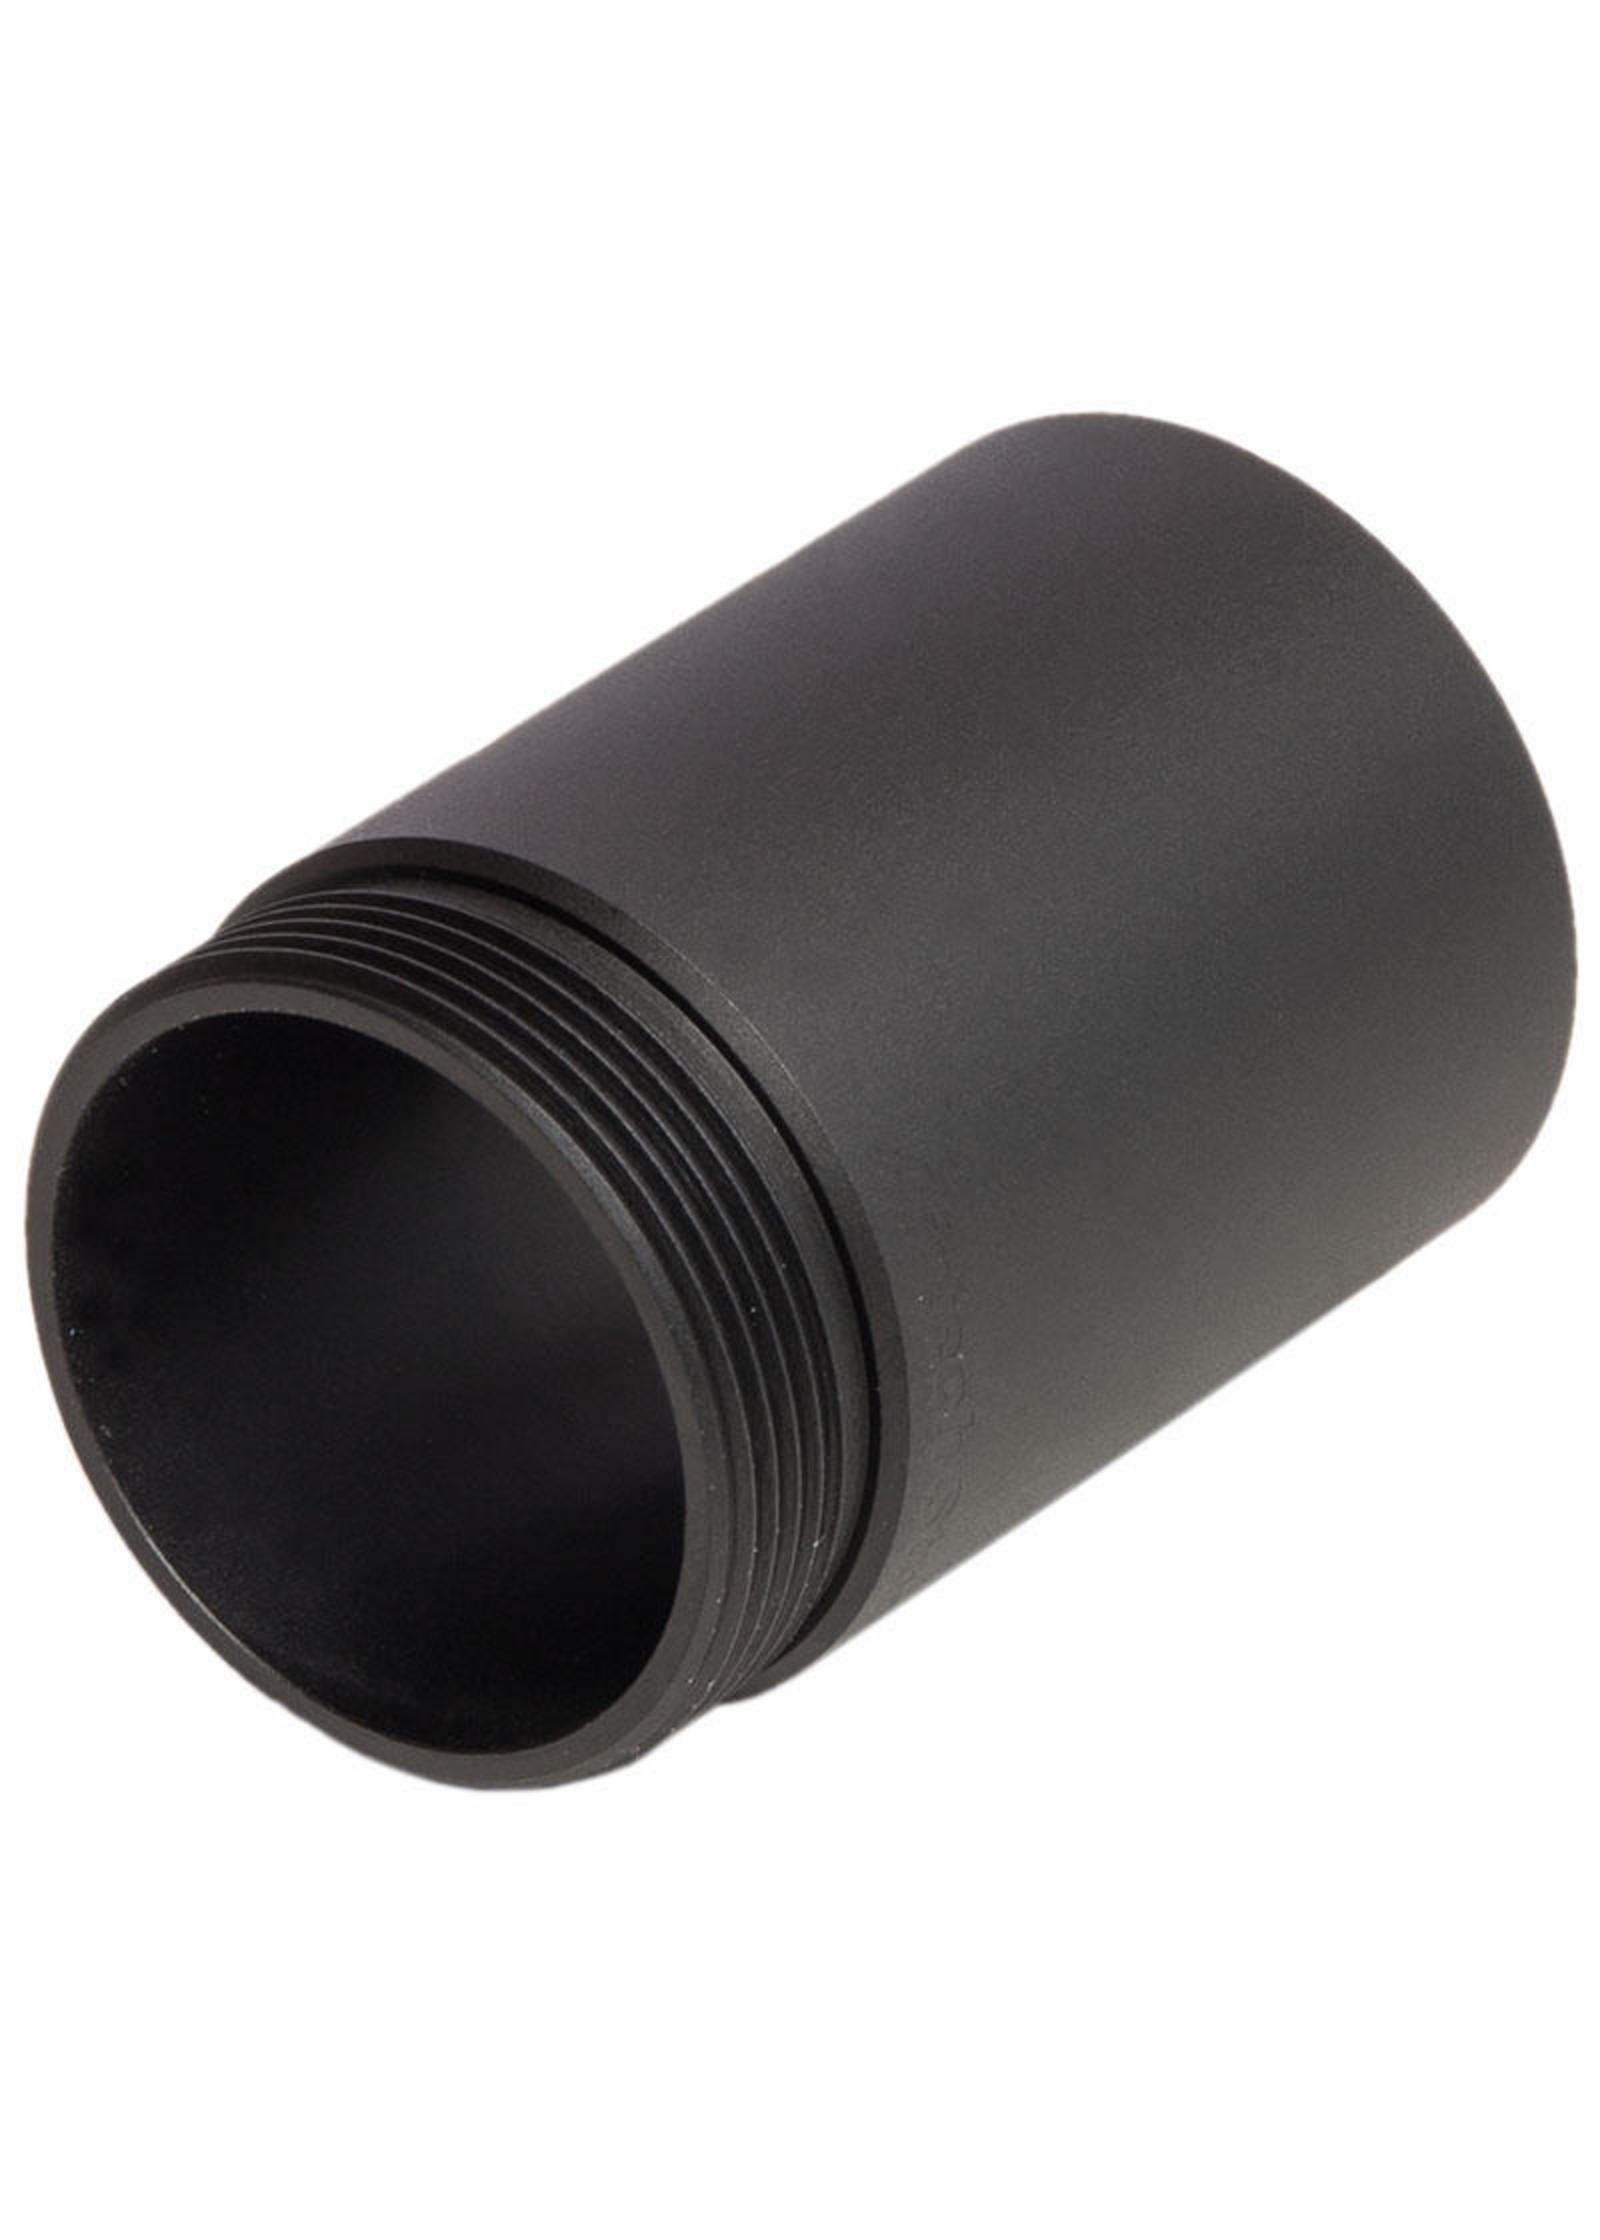 Airtech Studios SEU Suppressor Extension Kit for AM-013/014 363mm product image